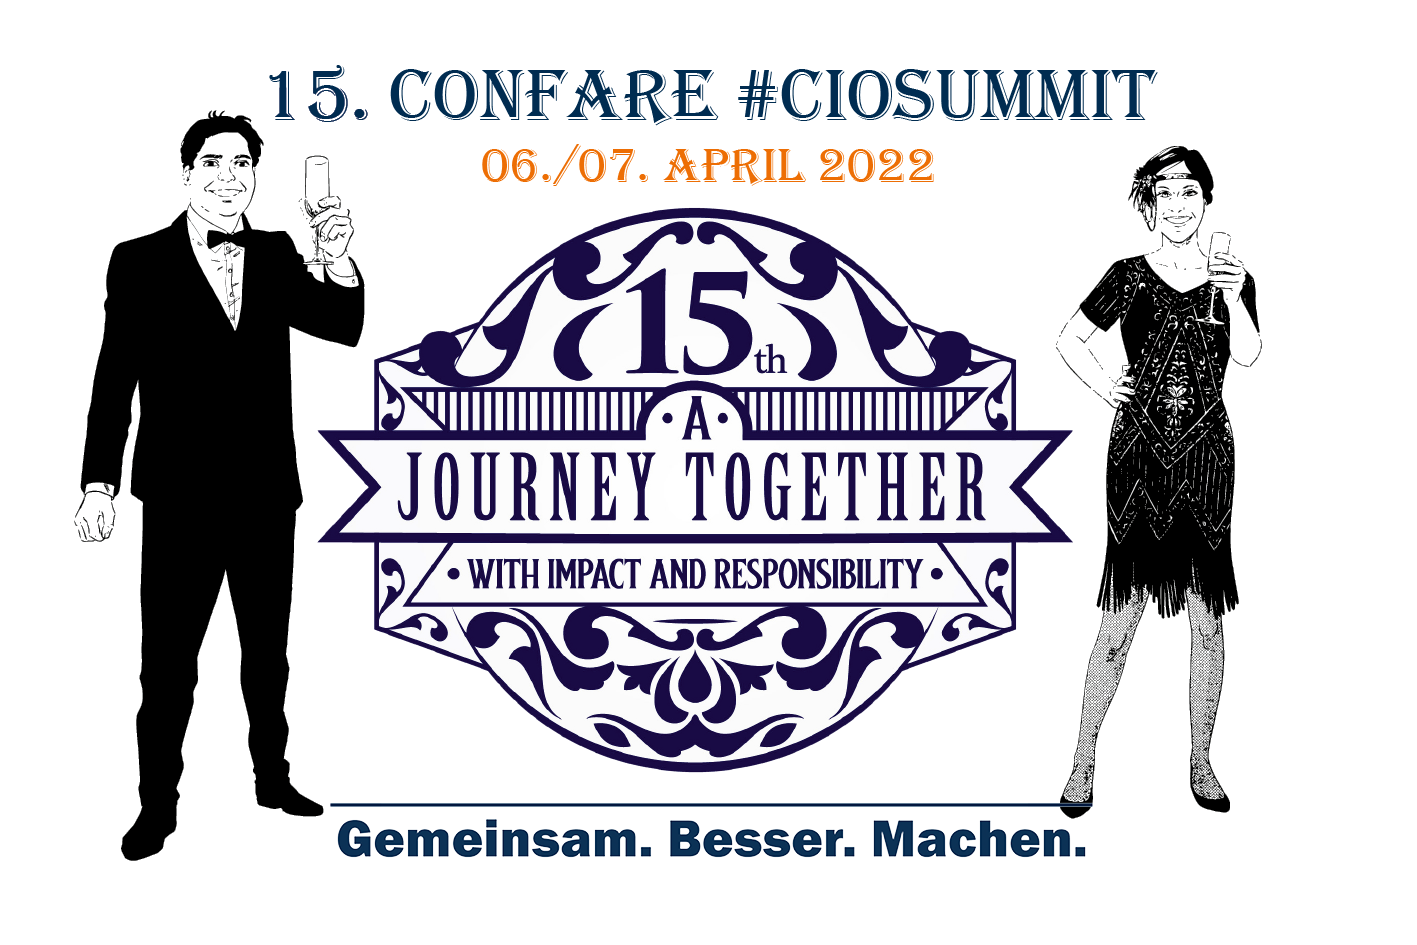 15. Confare CIOSUMMIT - A Journey Together with Imact and responsibility